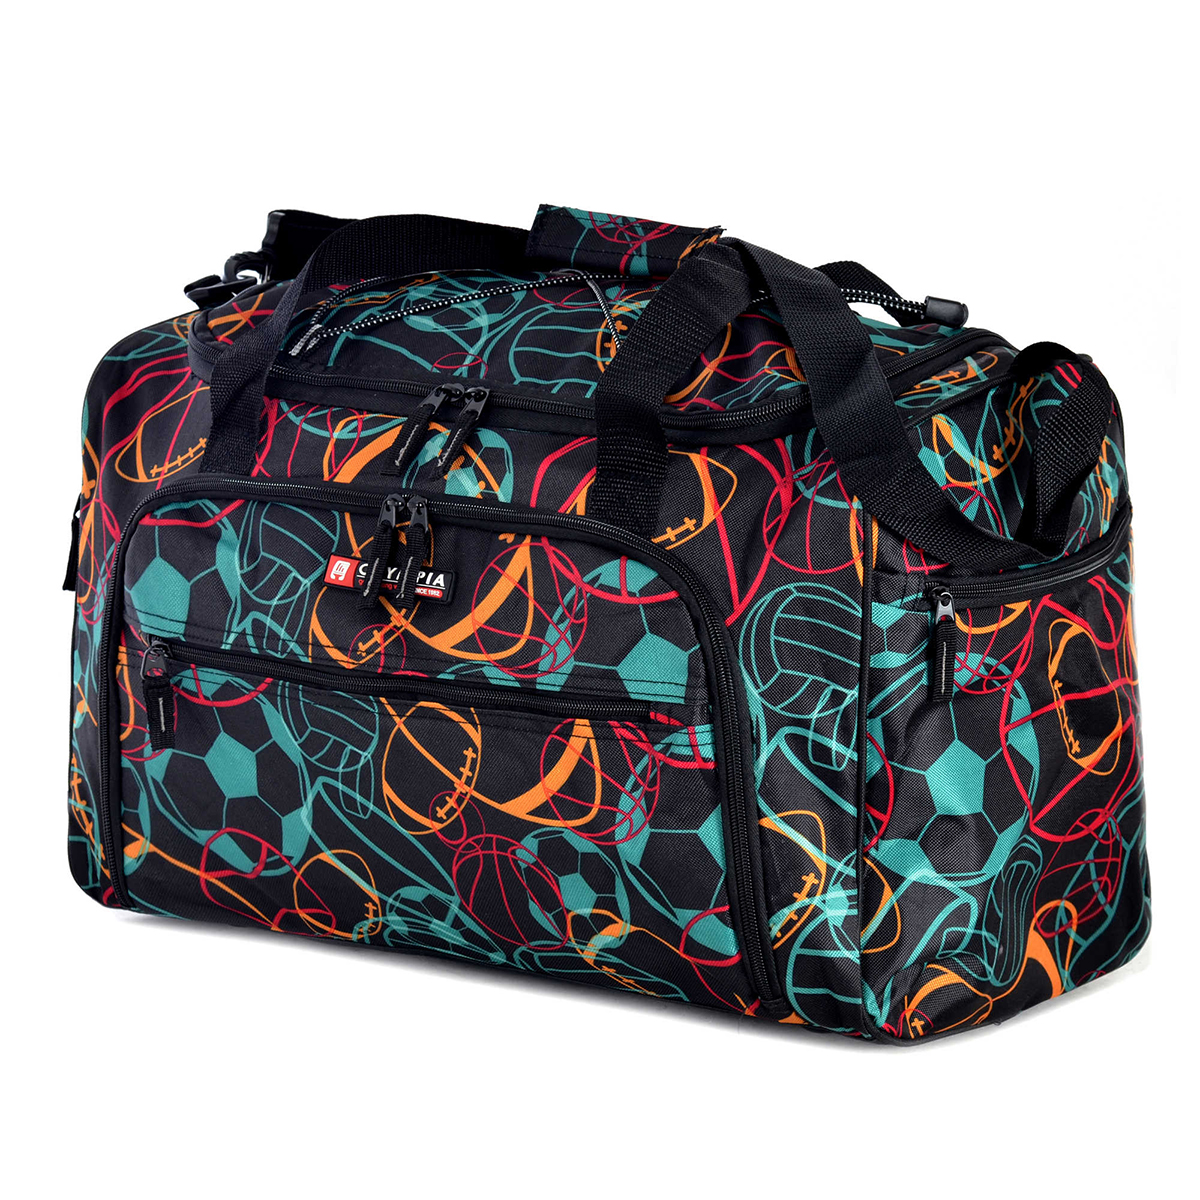 Olympia 25 Chic Duffel Bag Travel Tote With Adjustable Shoulder Strap Luggage by Olympia USA